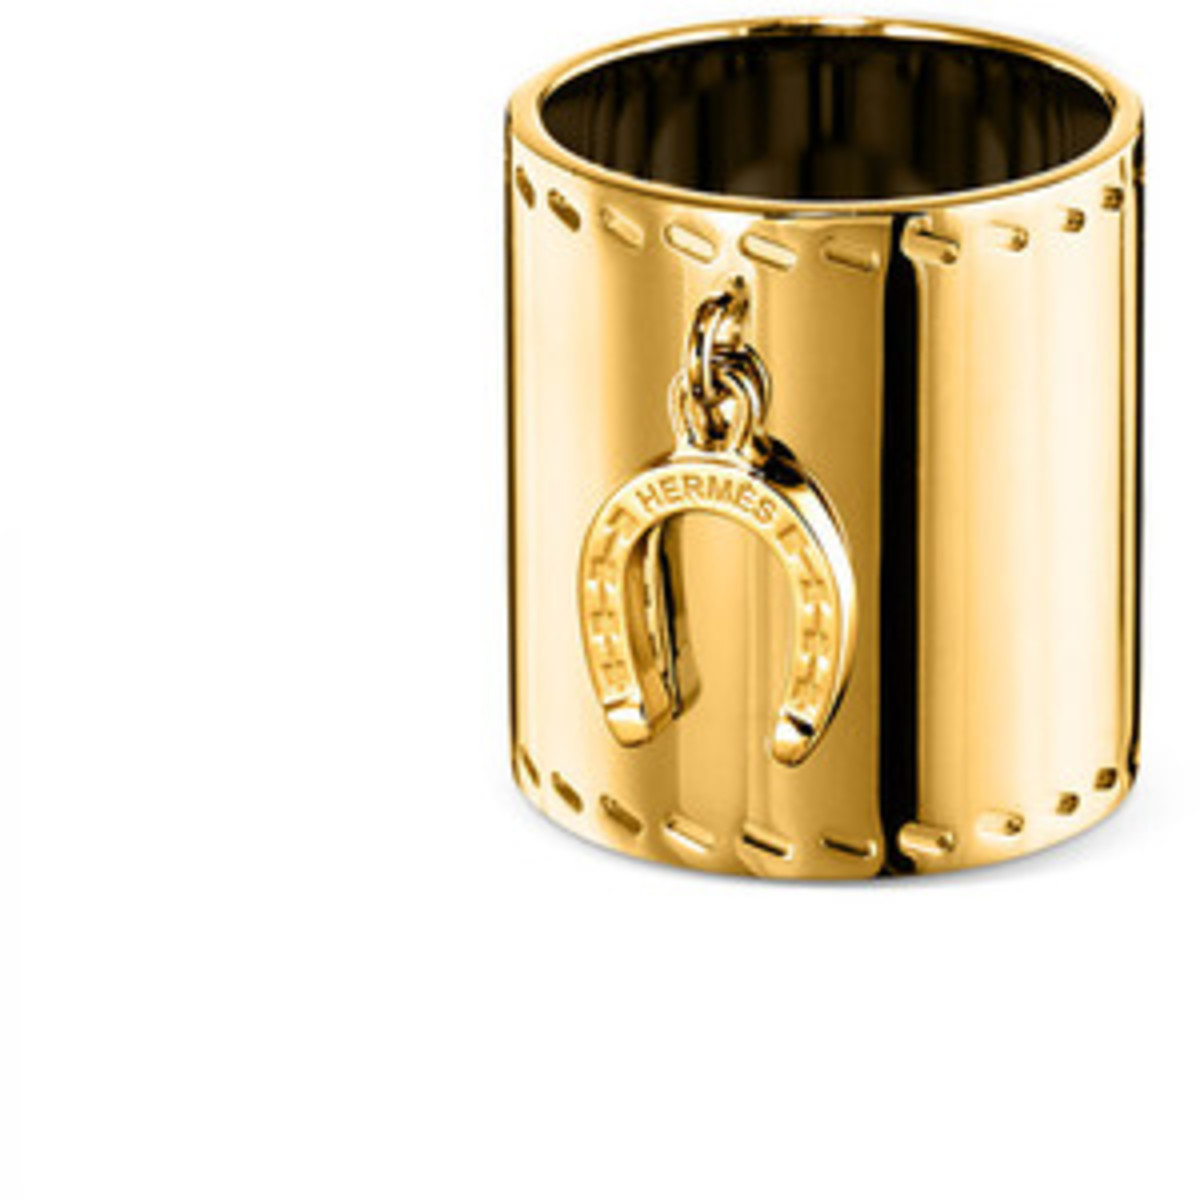 beautiful gold scarf ring by Hermes